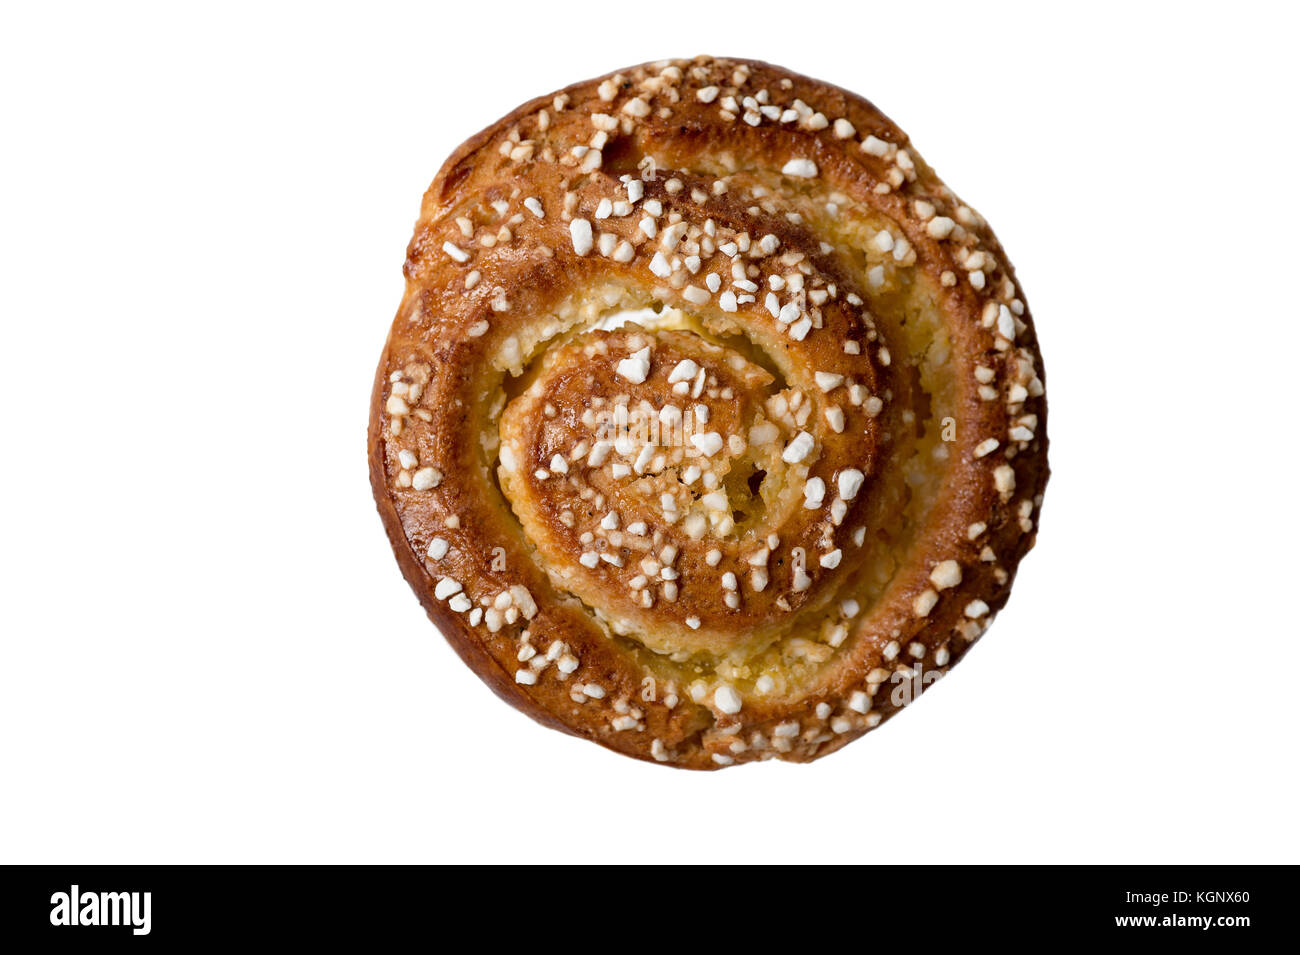 Homemade cinnamon bun decorated with crushed nib sugar isolated on white background. - Stock Image